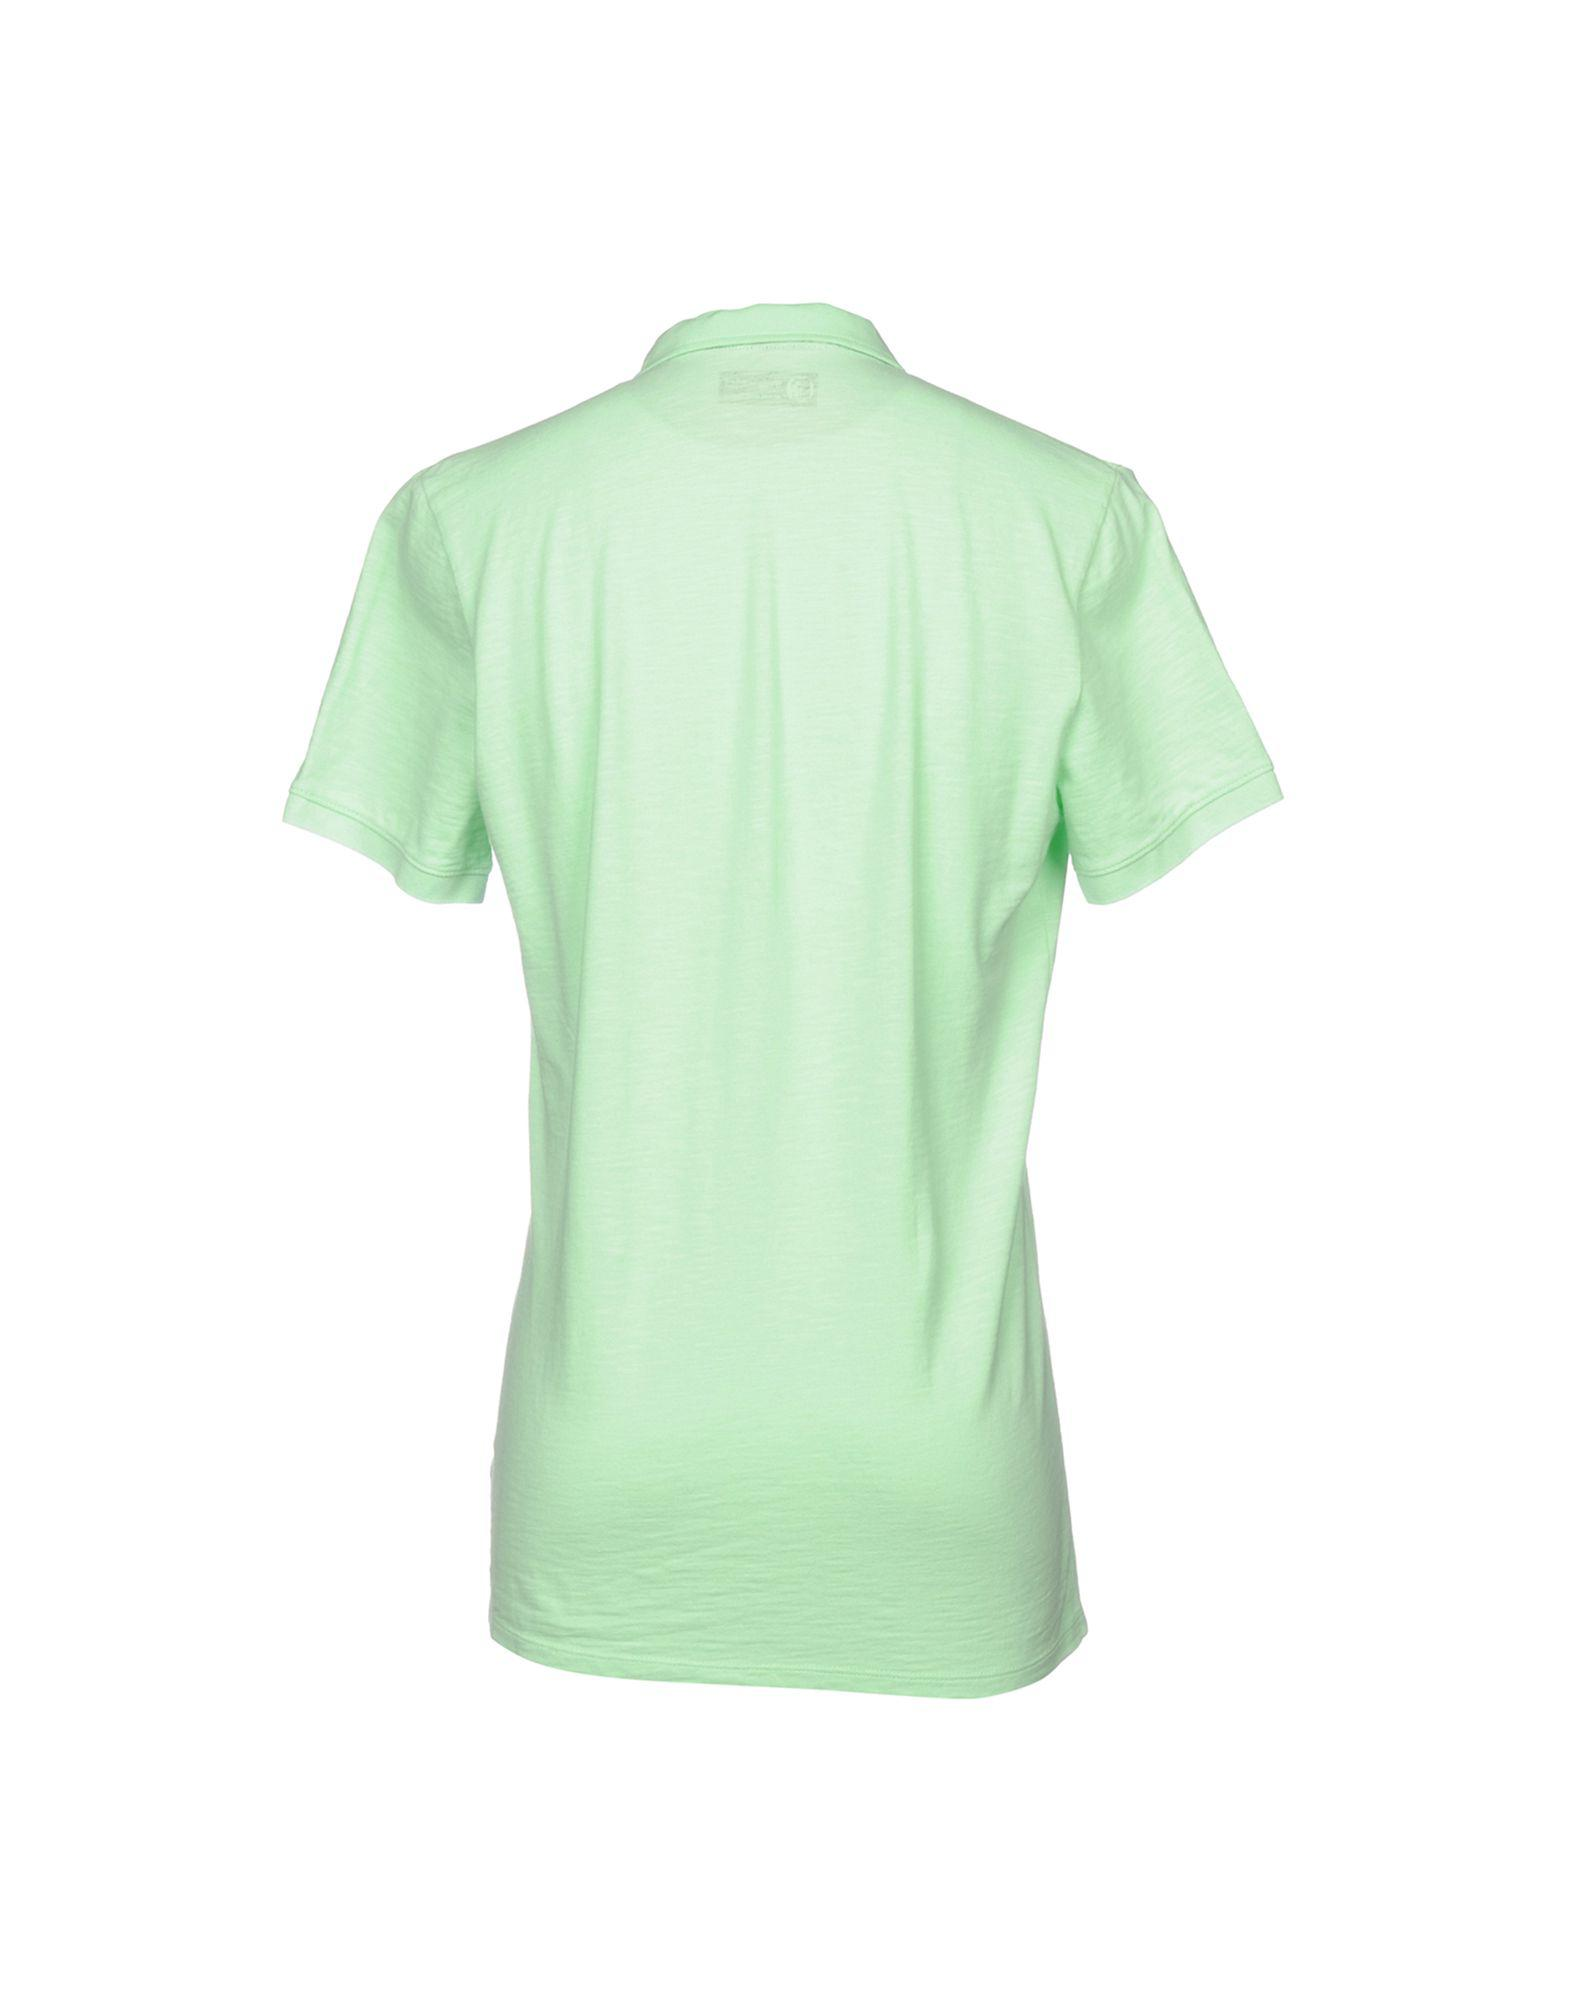 Pepe Jeans Cotton Polo Shirt in Acid Green (Green) for Men